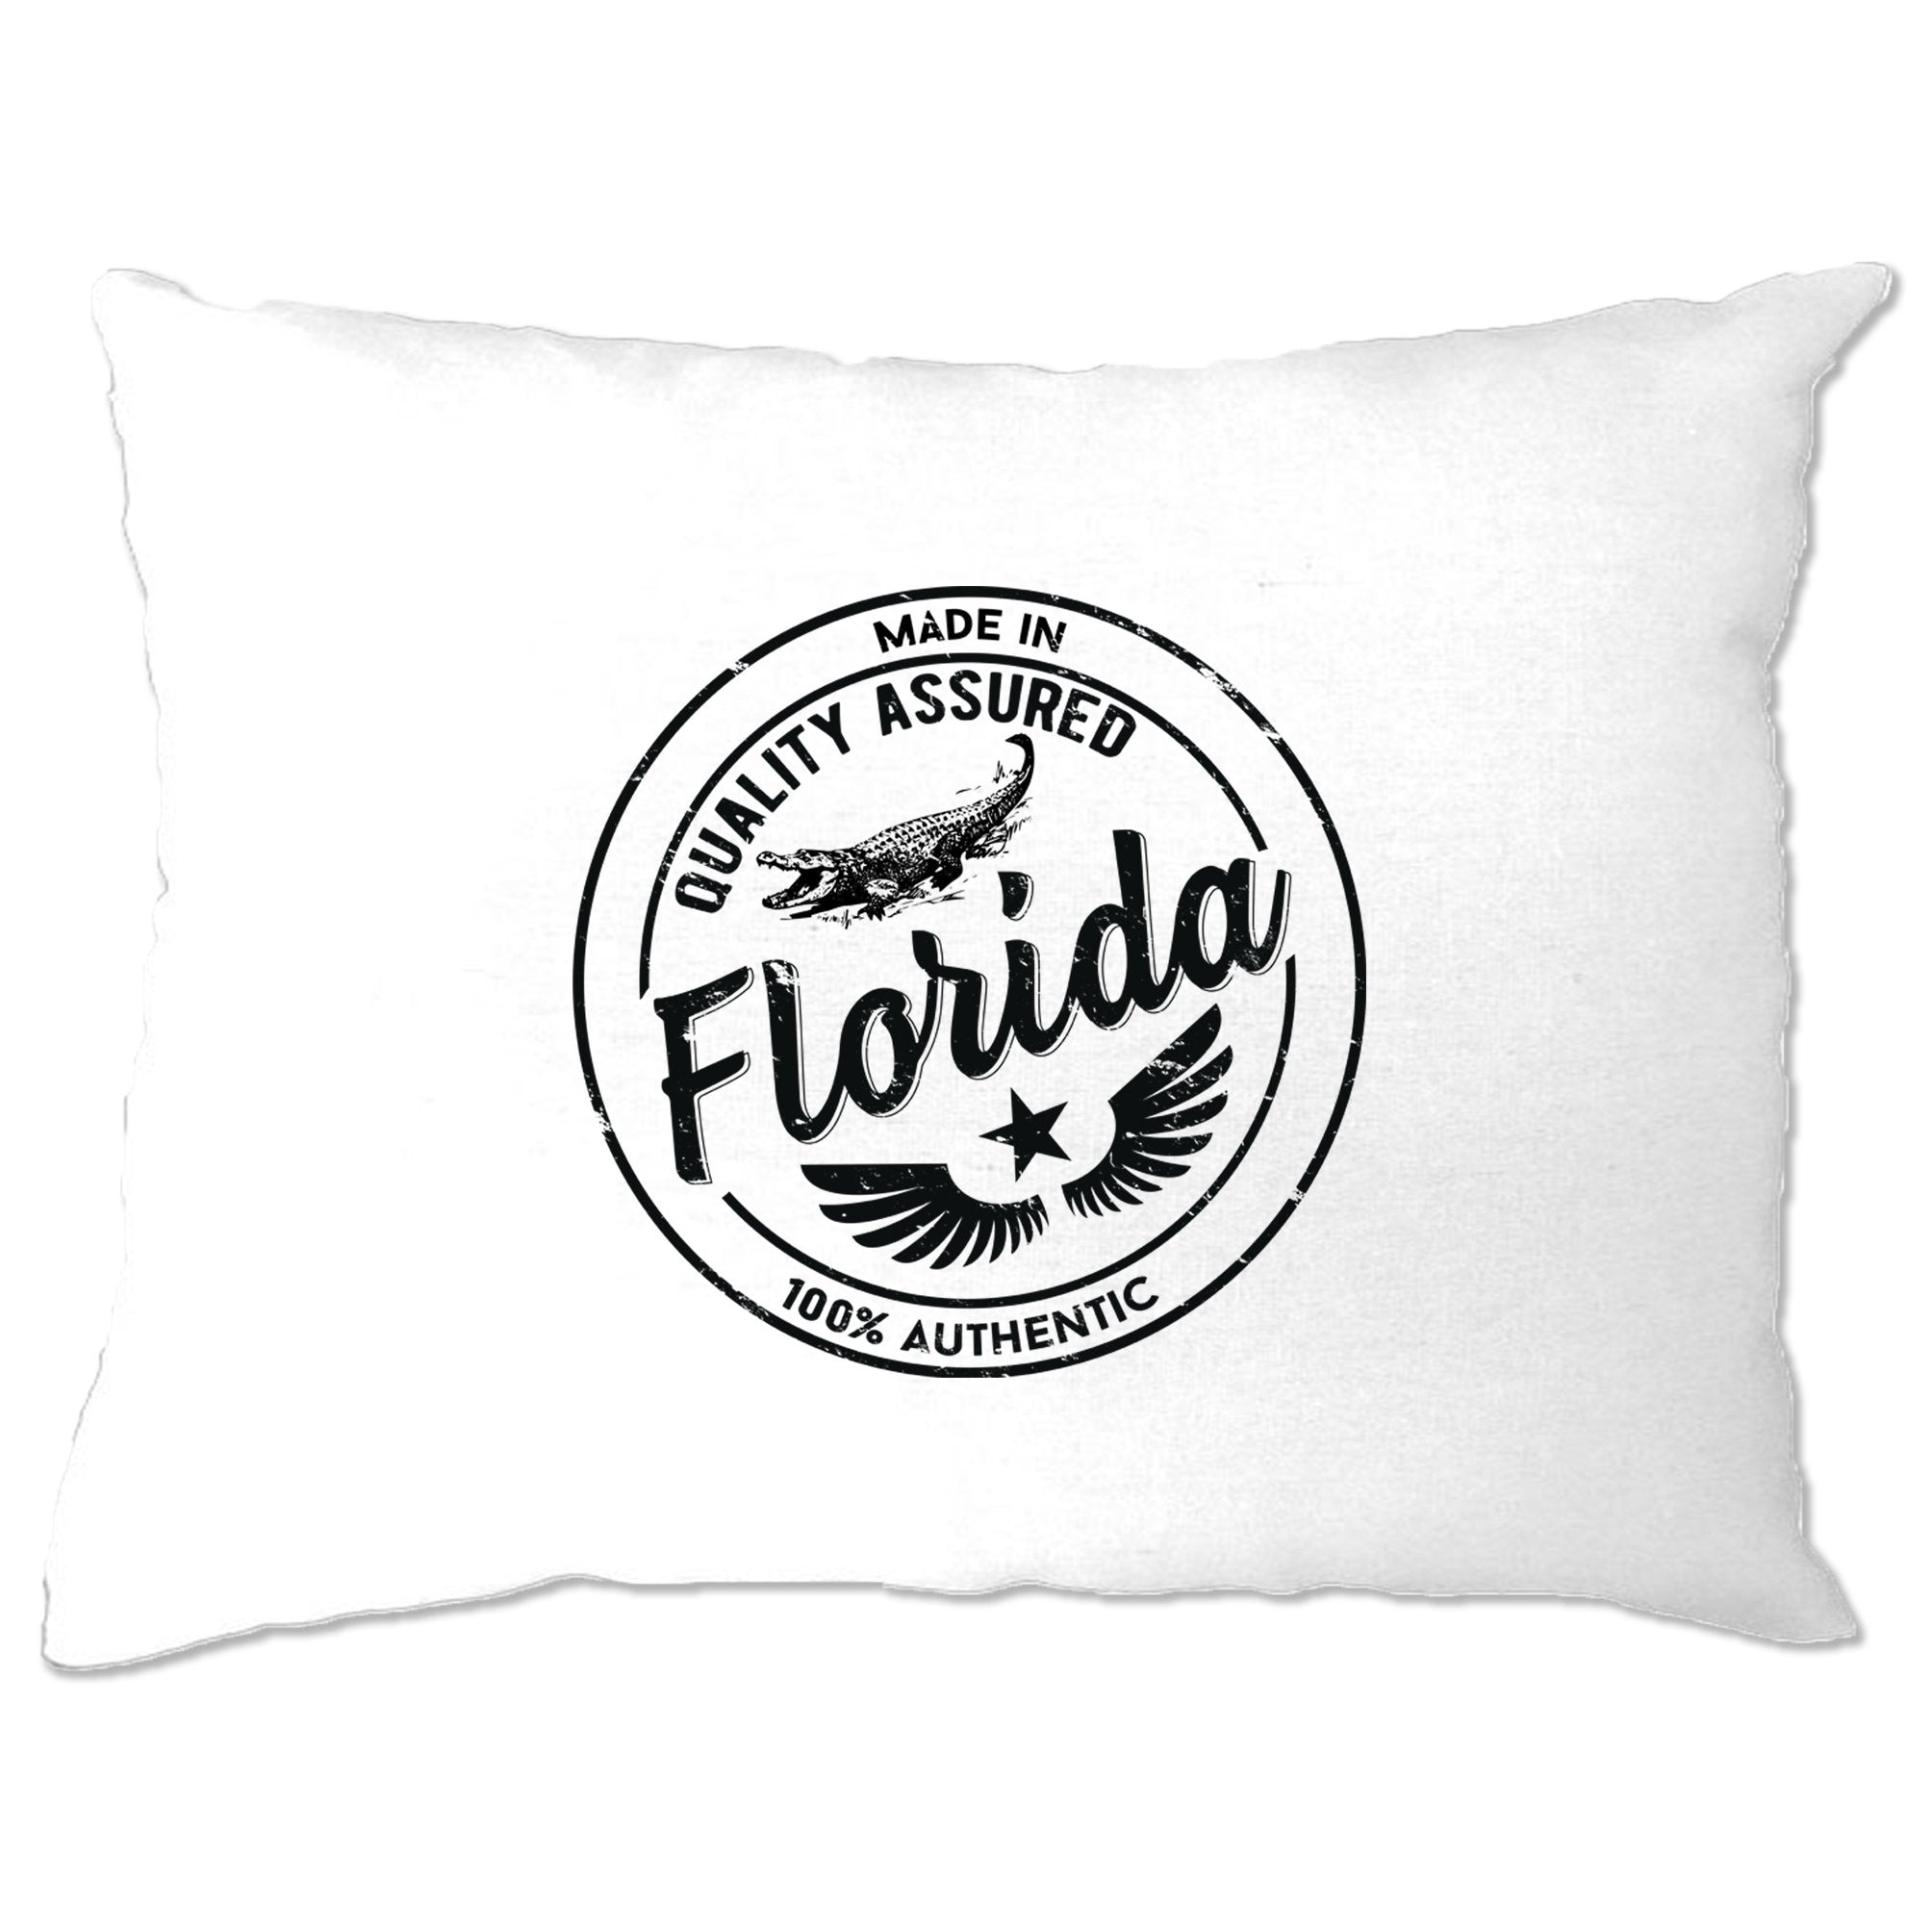 Hometown Pride Pillow Case Made in Florida Stamp